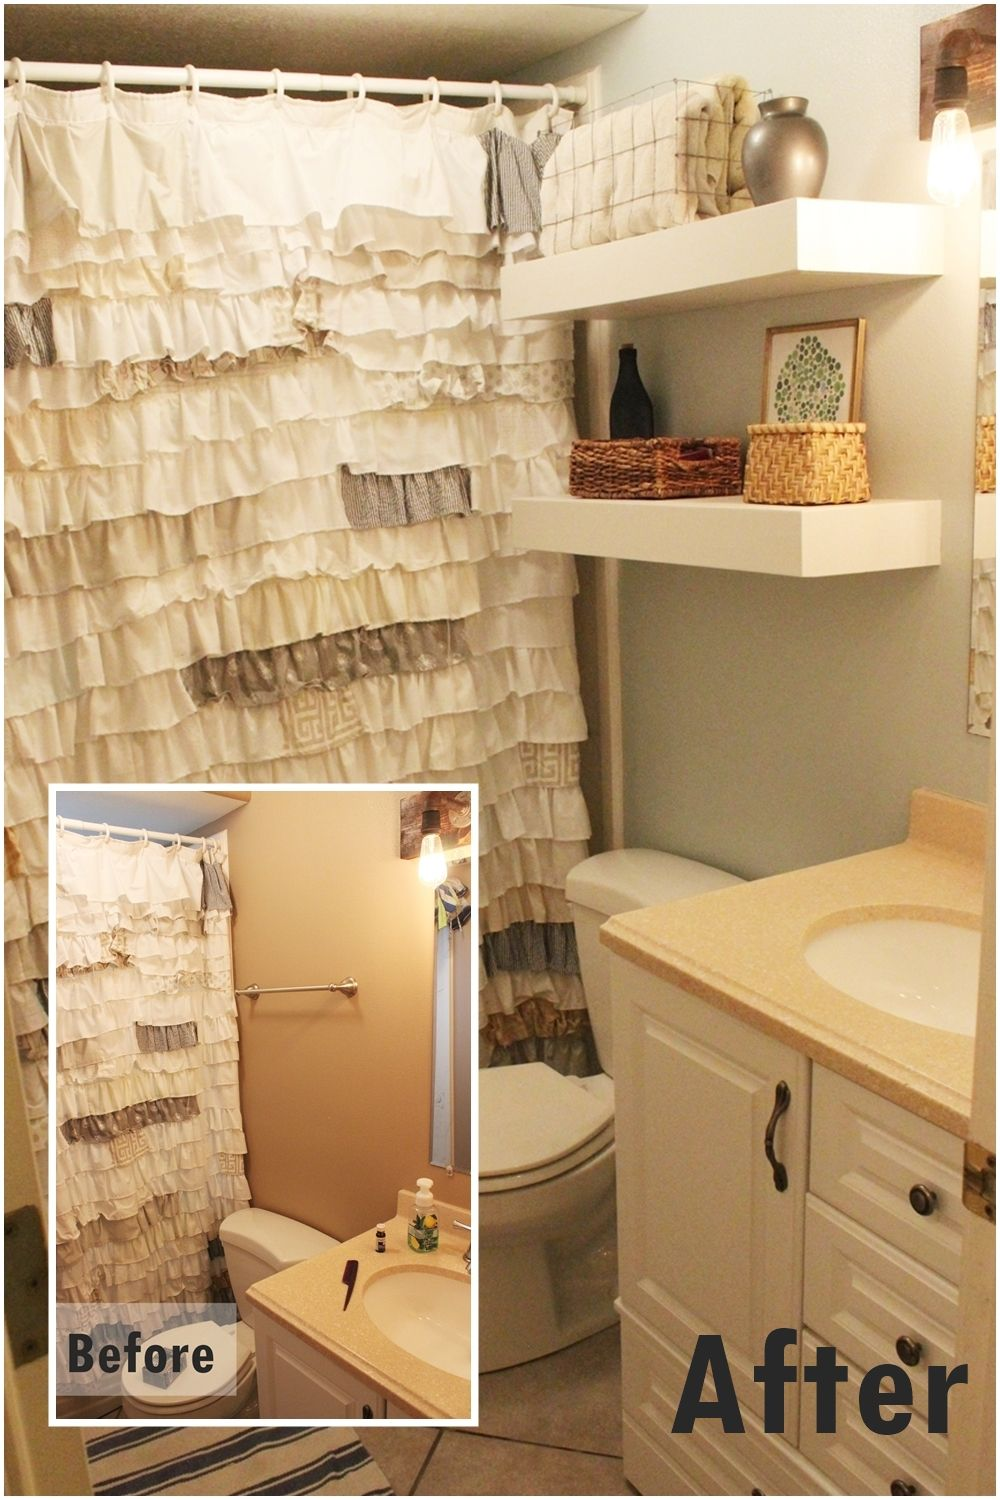 Diy Floating Shelves Bathroom Storage